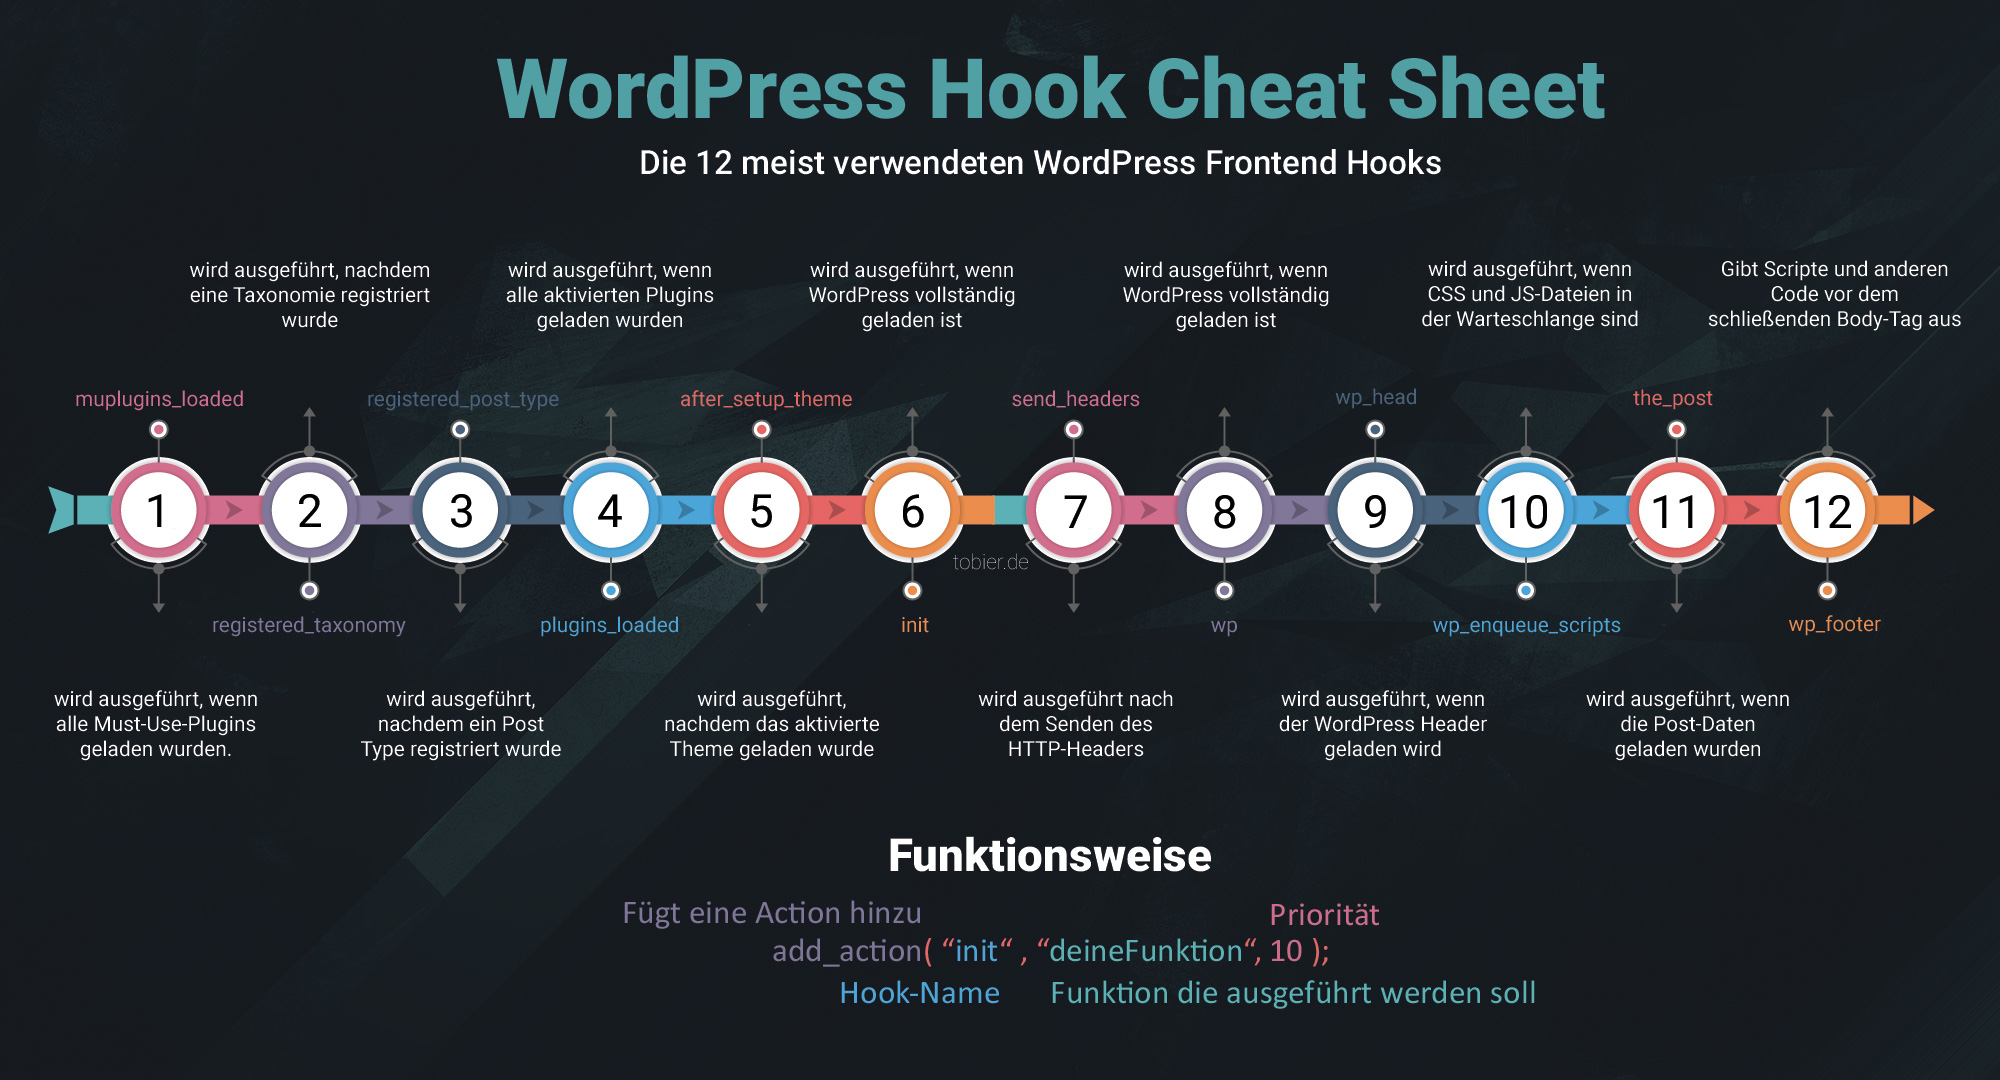 WordPress Hook Cheat Sheet